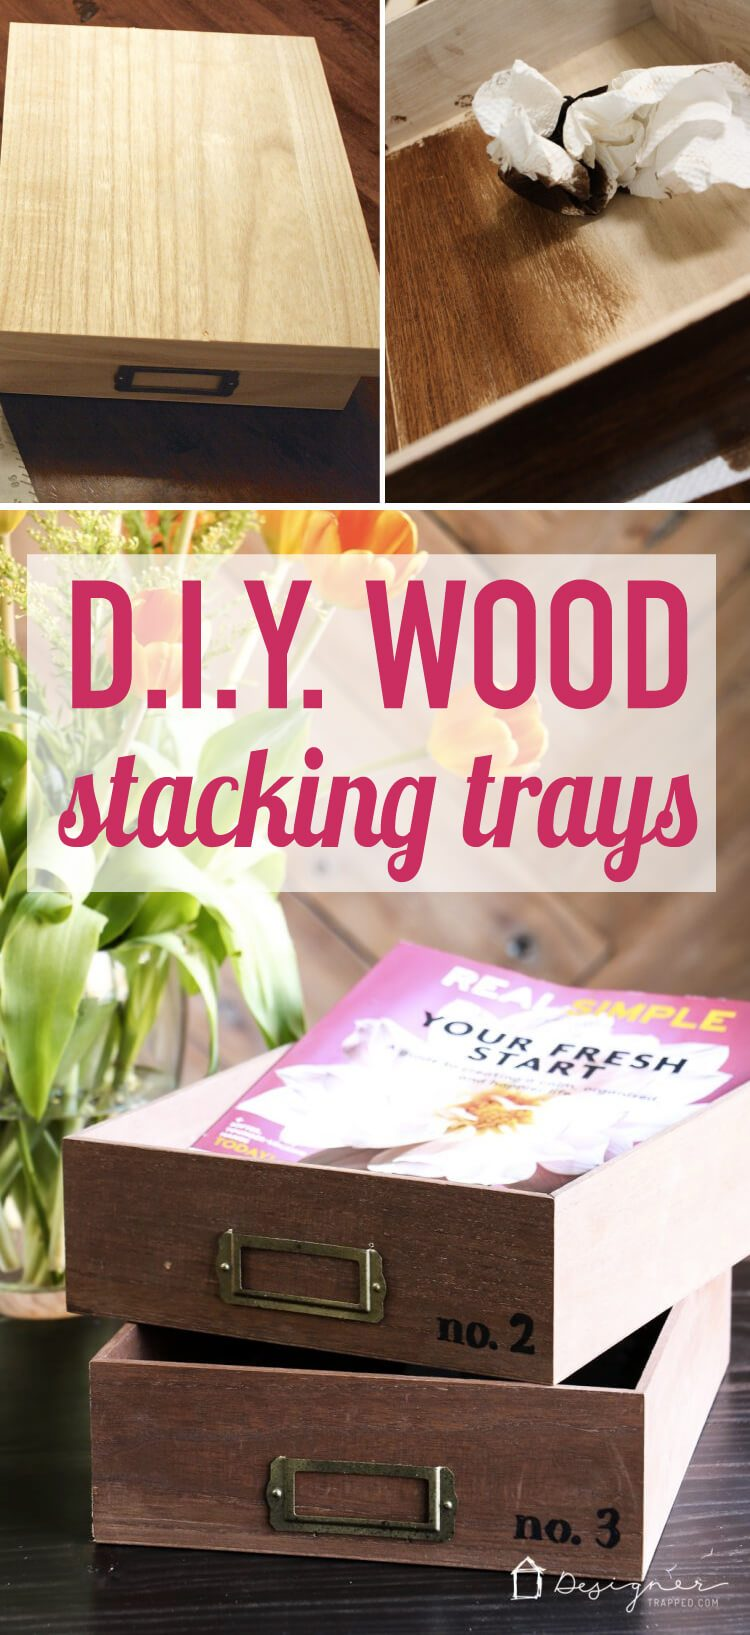 How Cute Are These Diy Desk Organizer Trays Such A Great Way To